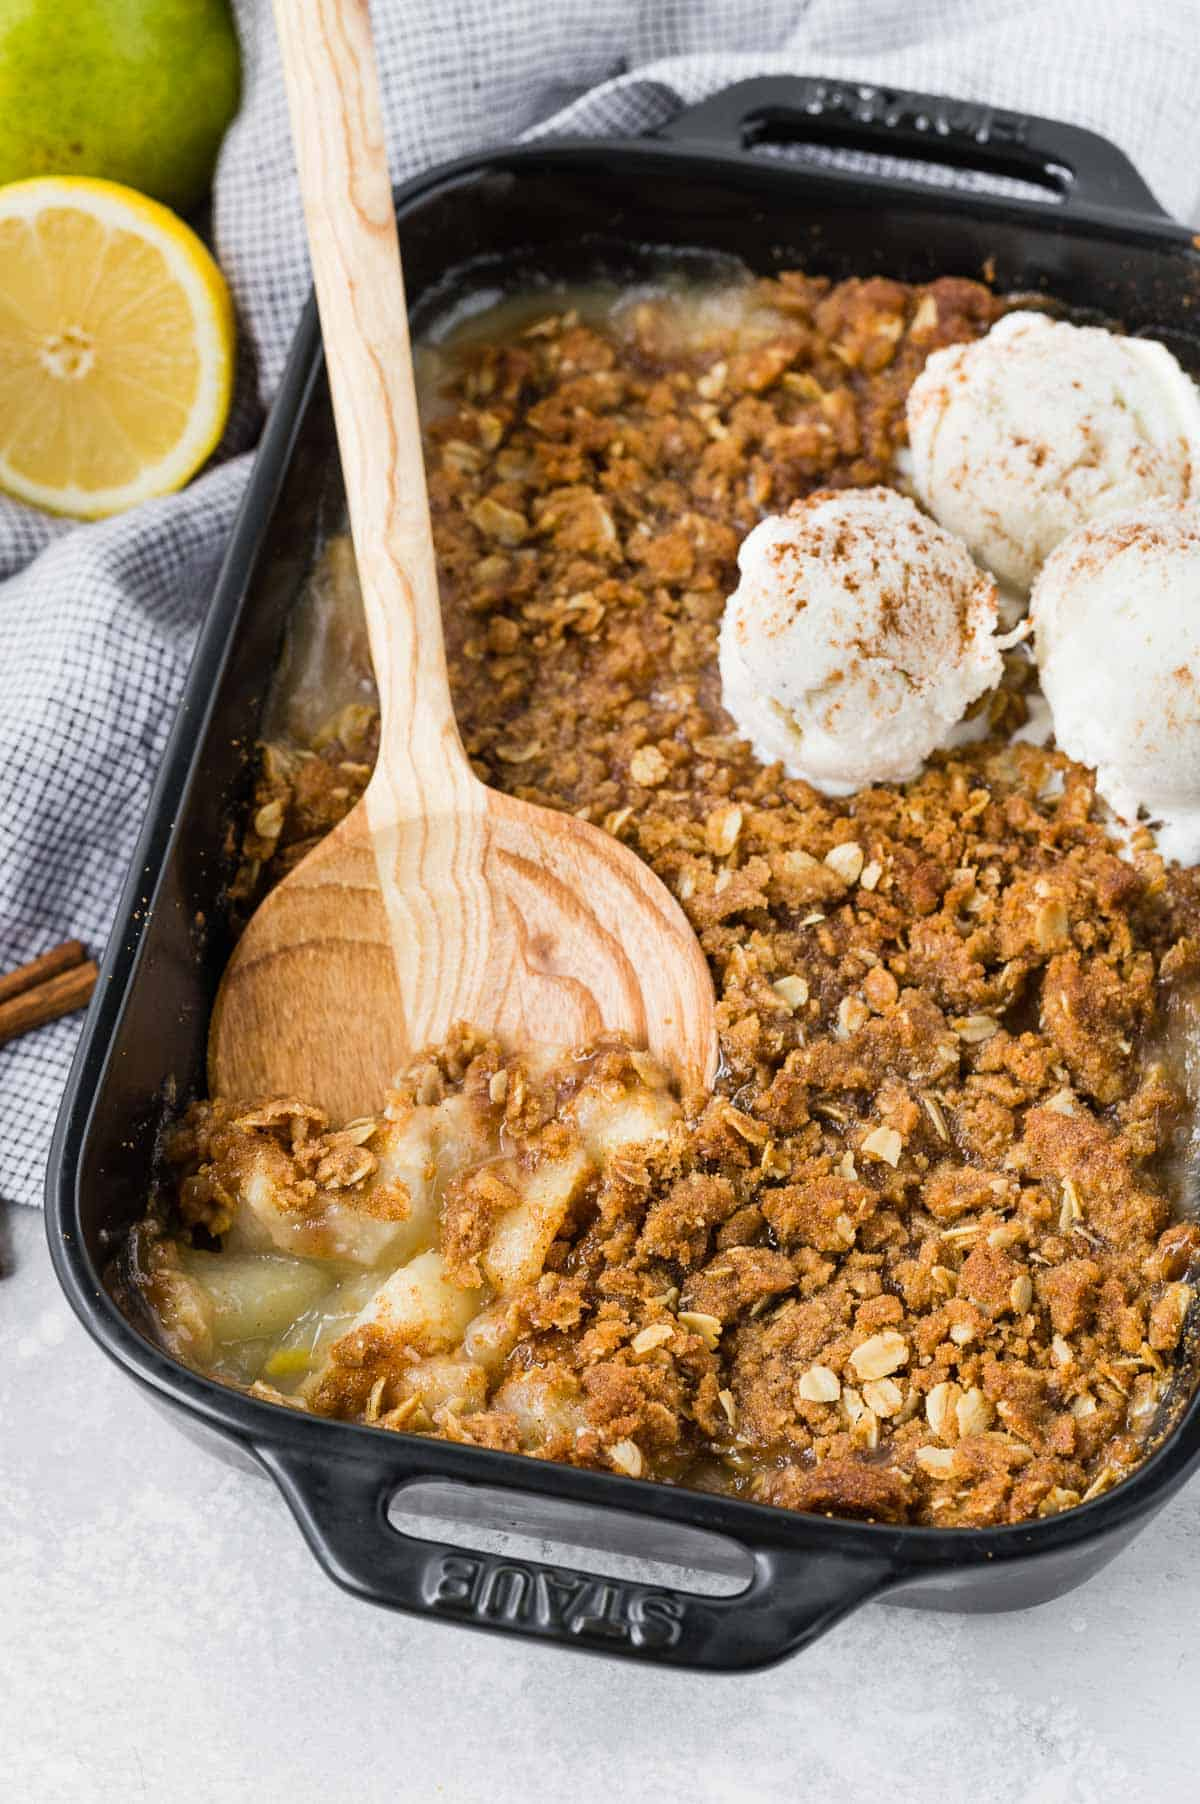 Black baking dish with pear crumble spiced with cinnamon and ginger. Topped with ice cream.